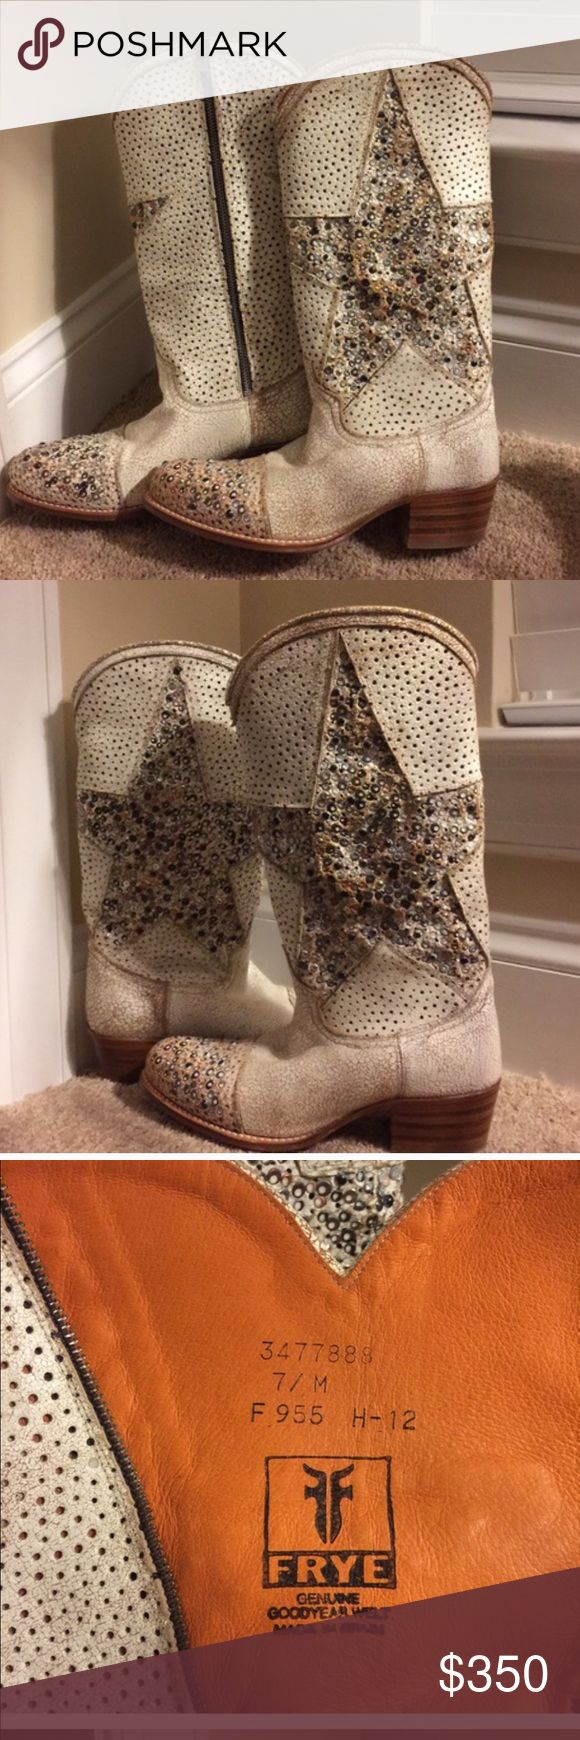 Frye Deborah Studded Boots As seen on Miranda Lambert and several other country singers. Gorgeous star print studded boots by Frye.  These are amazing.  BRAND NEW WITH TAGS.  Would also trade for a 6 1/2. Frye Shoes Heeled Boots